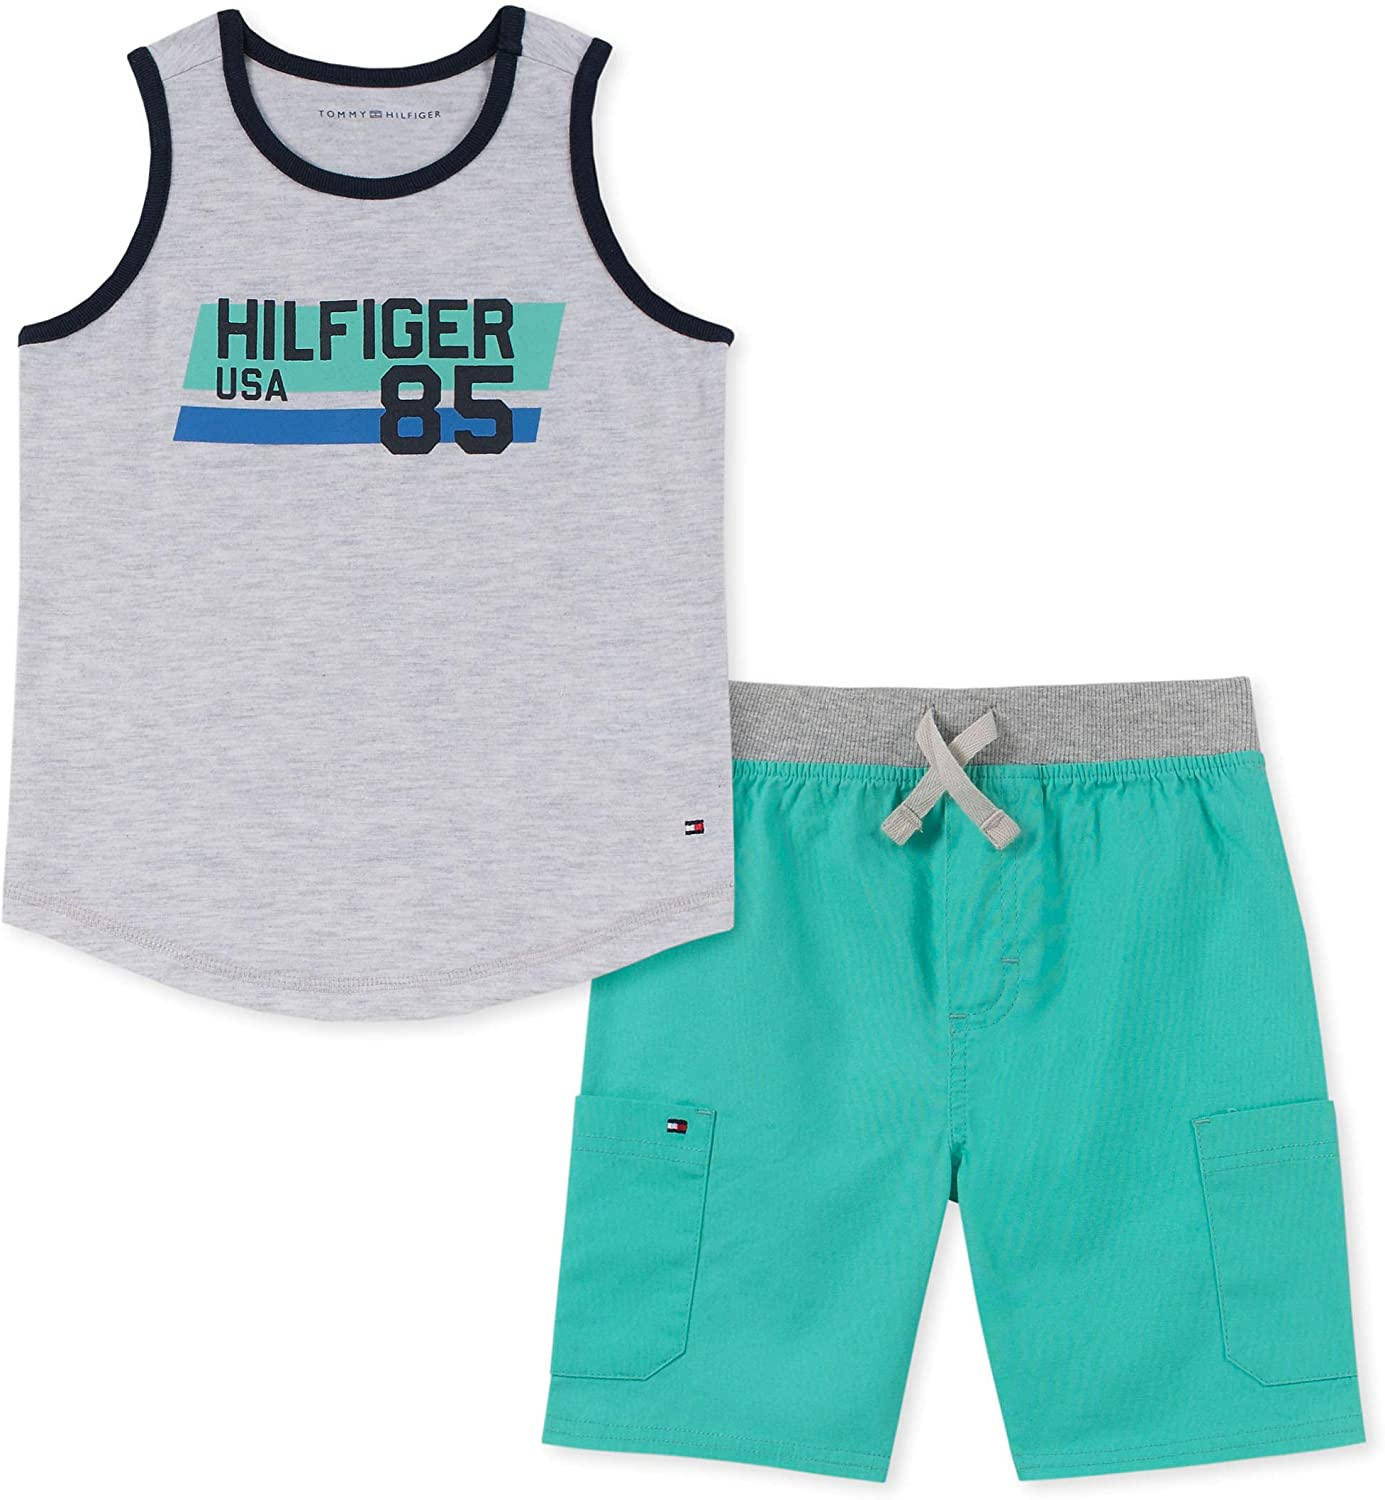 Tommy Hilfiger Baby Boys' 2 Pieces Tank Top Shorts Set